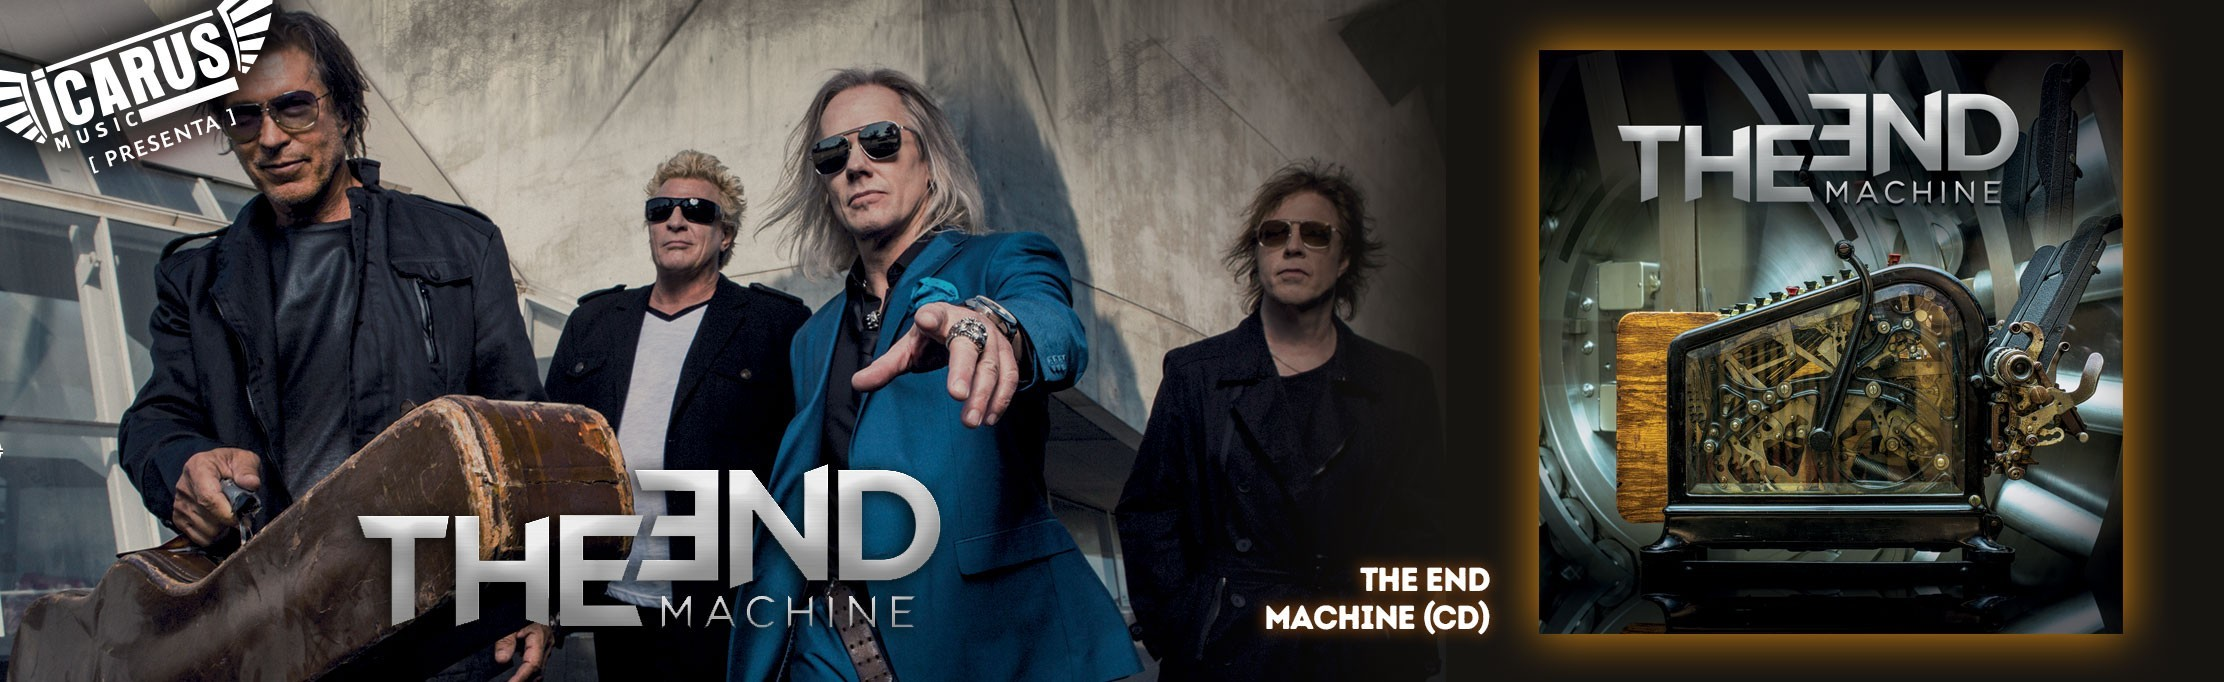 THE END MACHINE - the end machine - Cd THE END MACHINE es el nombre que han usado 3 de los miembros de la formación clásica de DOKKEN